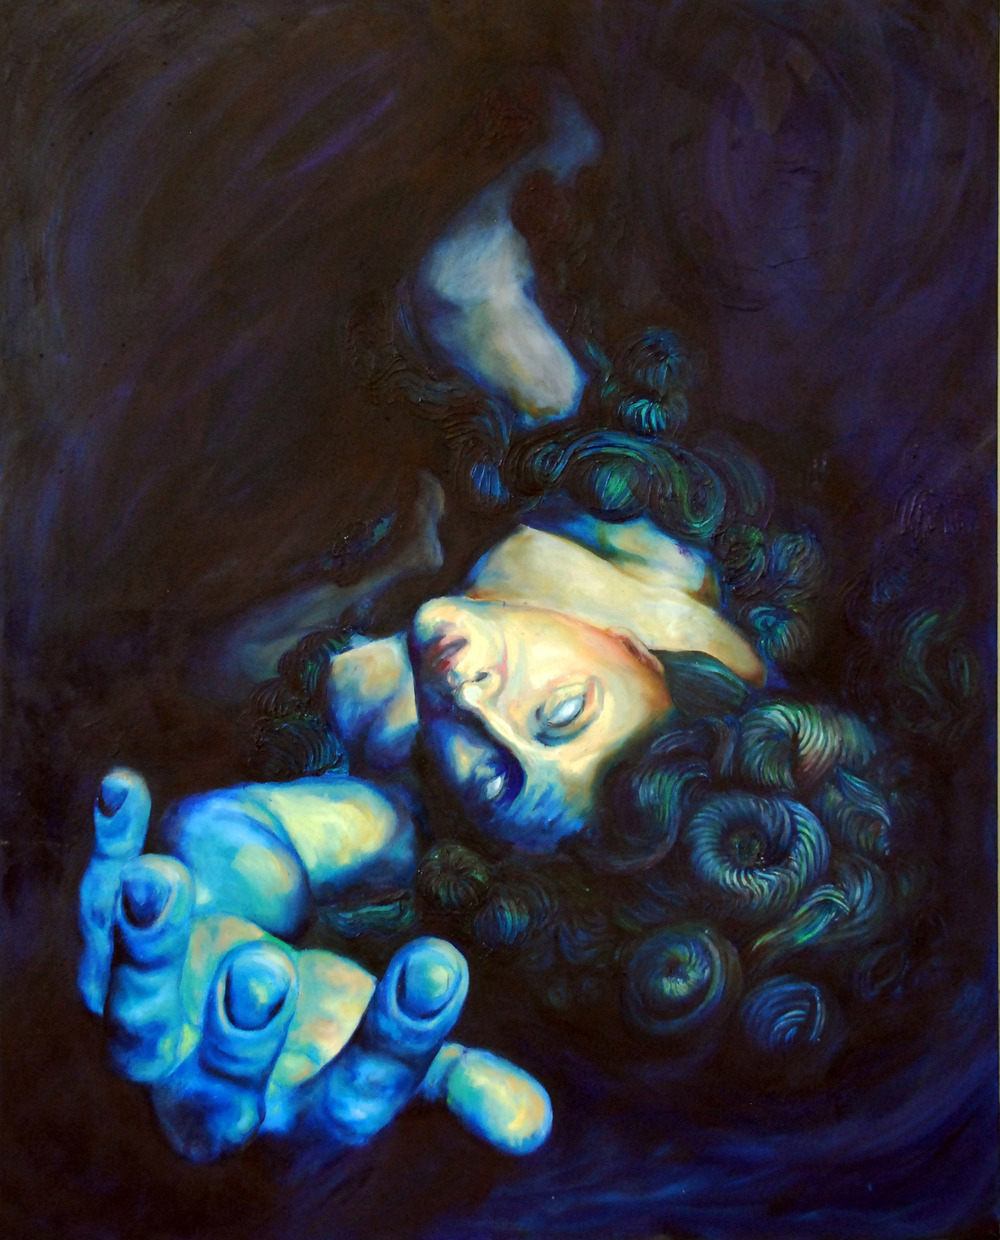 Uncohnscious Soul 1 - 60 by 48- oil on canvas.jpg